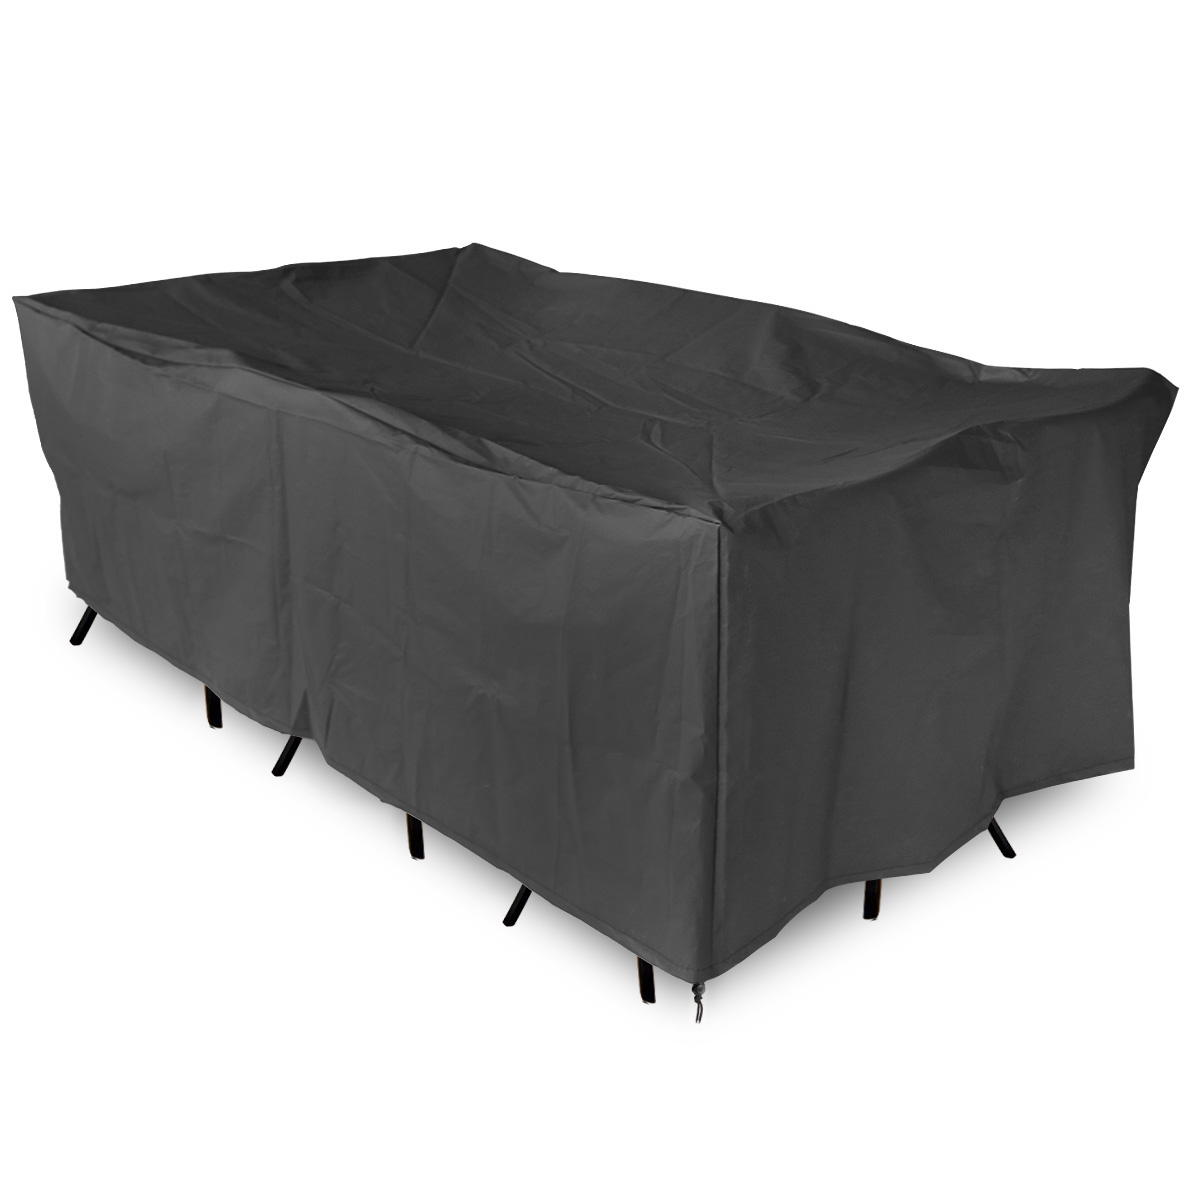 black outdoor chair covers kids personalized chairs garden patio furniture set cover cube waterproof ebay